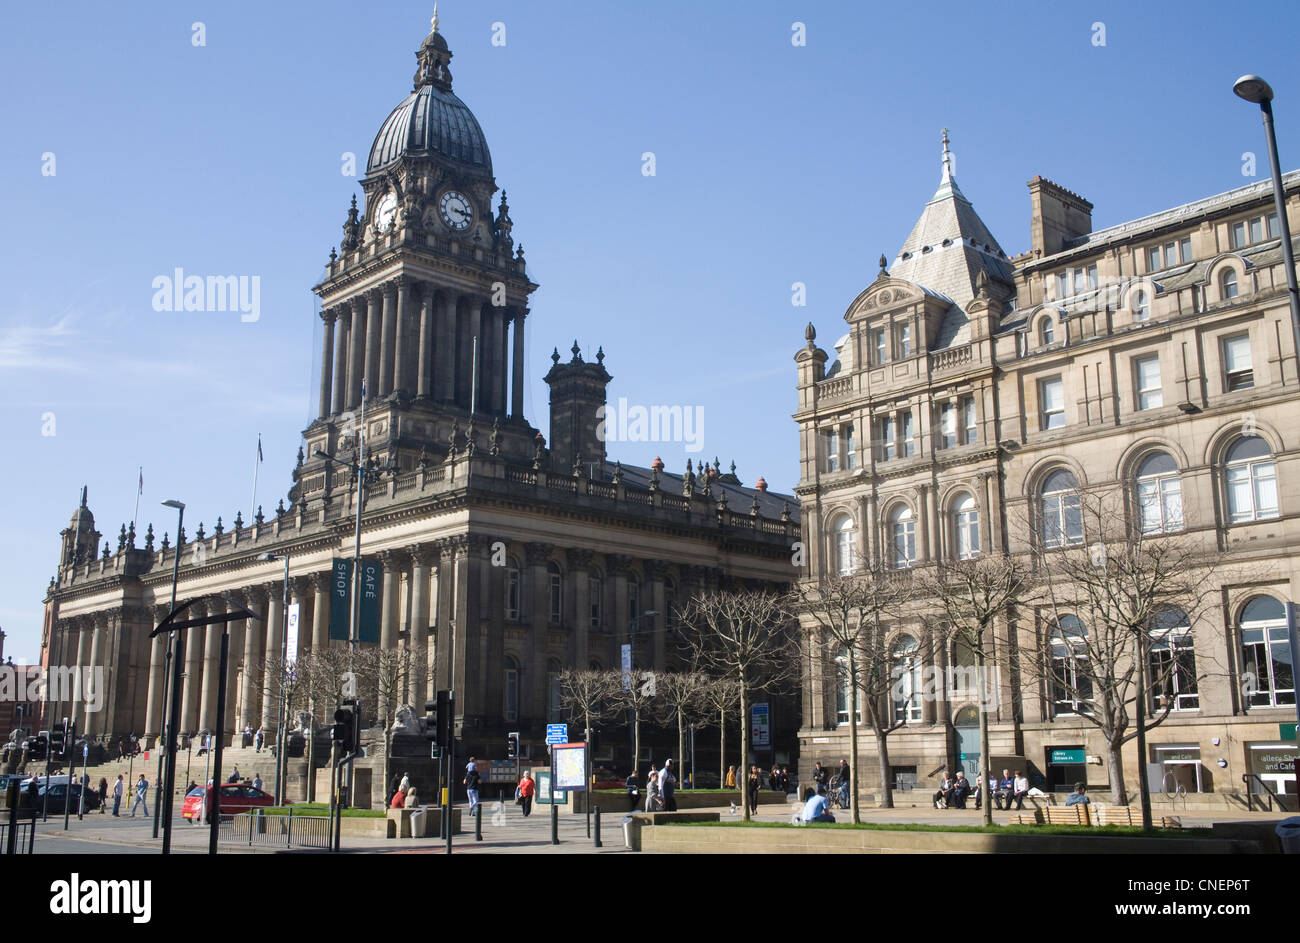 Leeds West Yorkshire England Art Gallery Library cafe bookshop and Town Hall in The Headrow - Stock Image